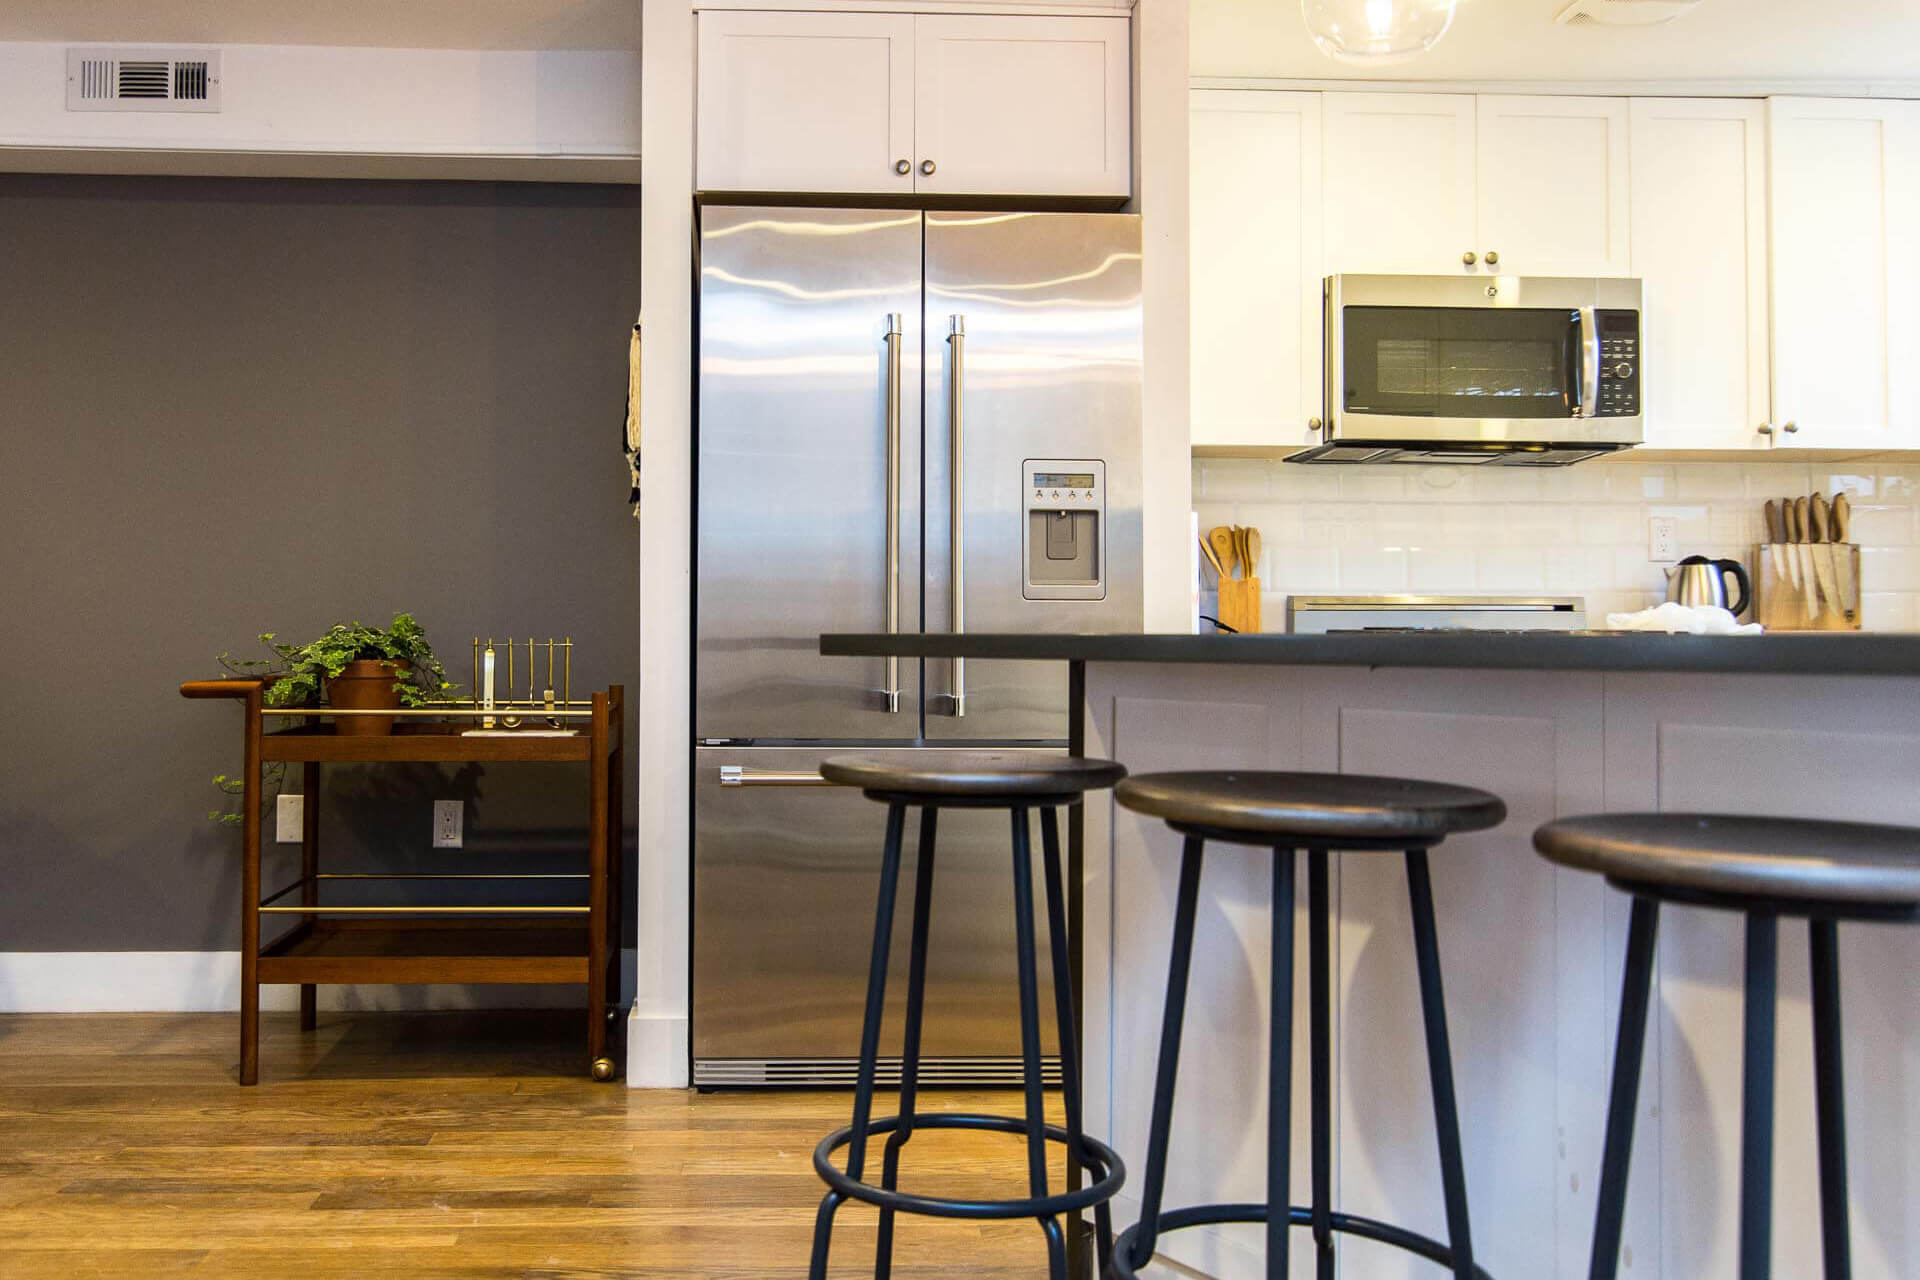 The shared kitchen at Common Albany in Crown Heights, Brooklyn.